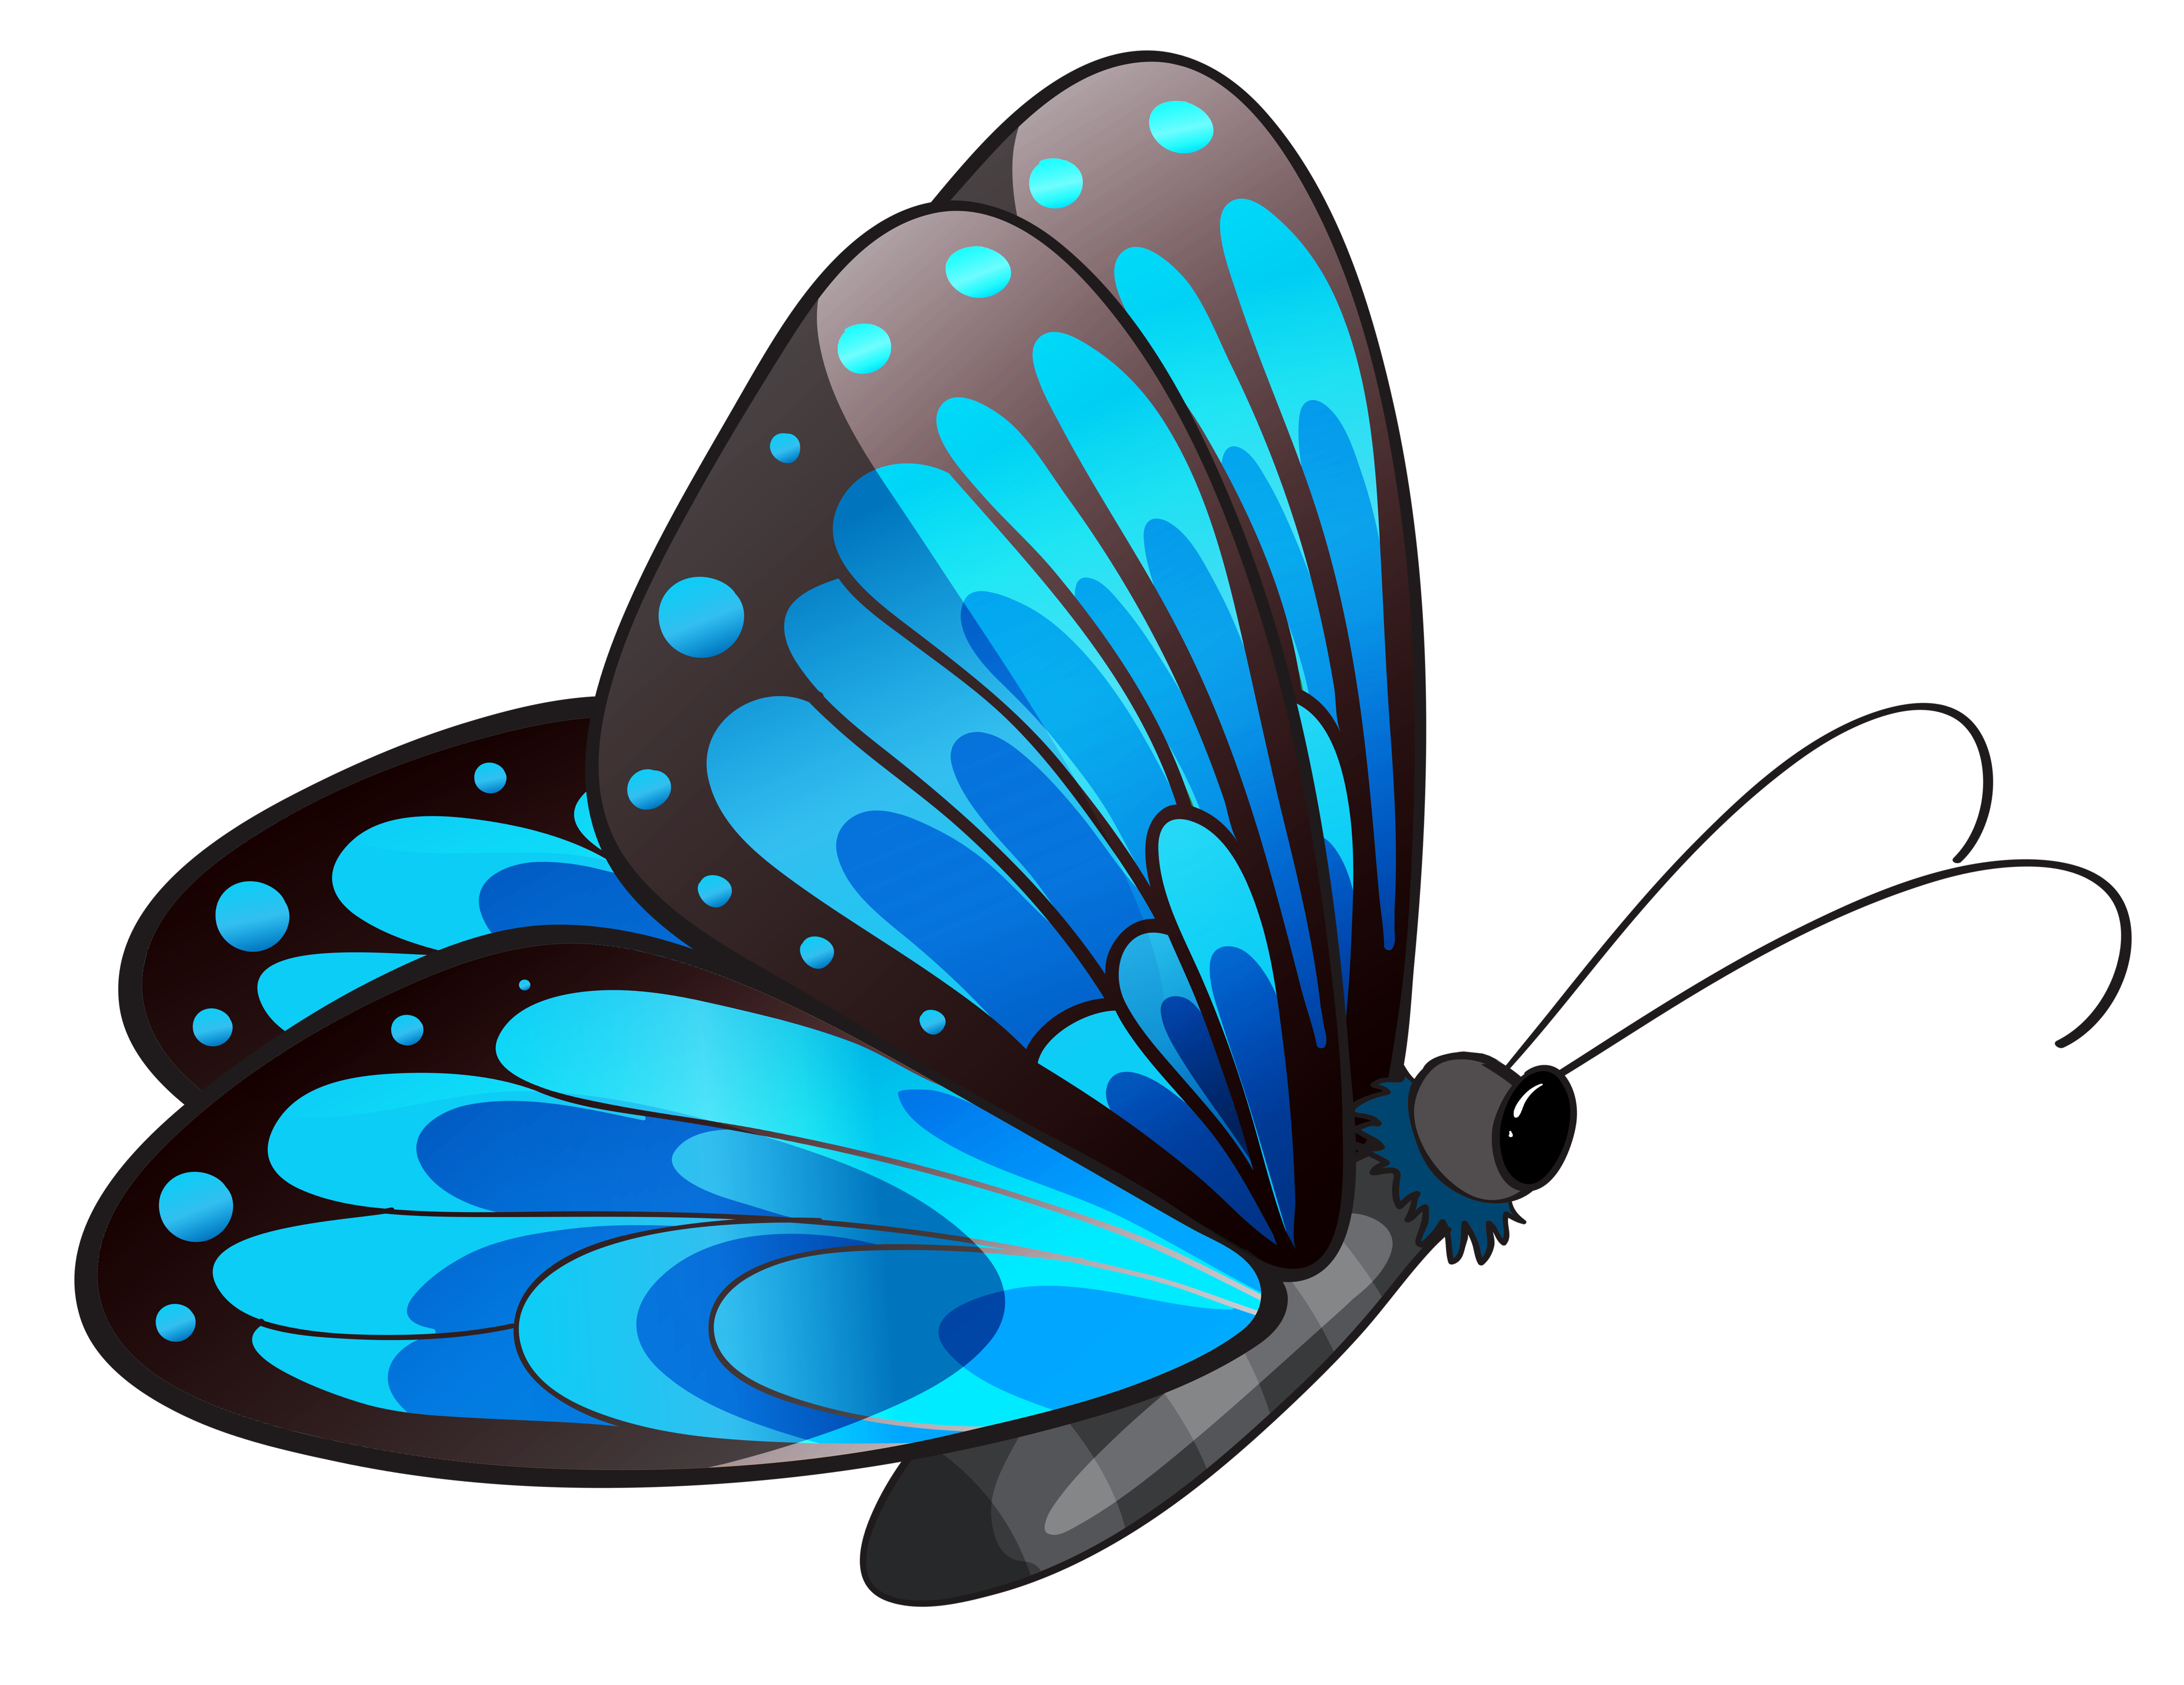 Free butterfly clipart png clip art royalty free download Butterfly clipart png images - ClipartFest clip art royalty free download